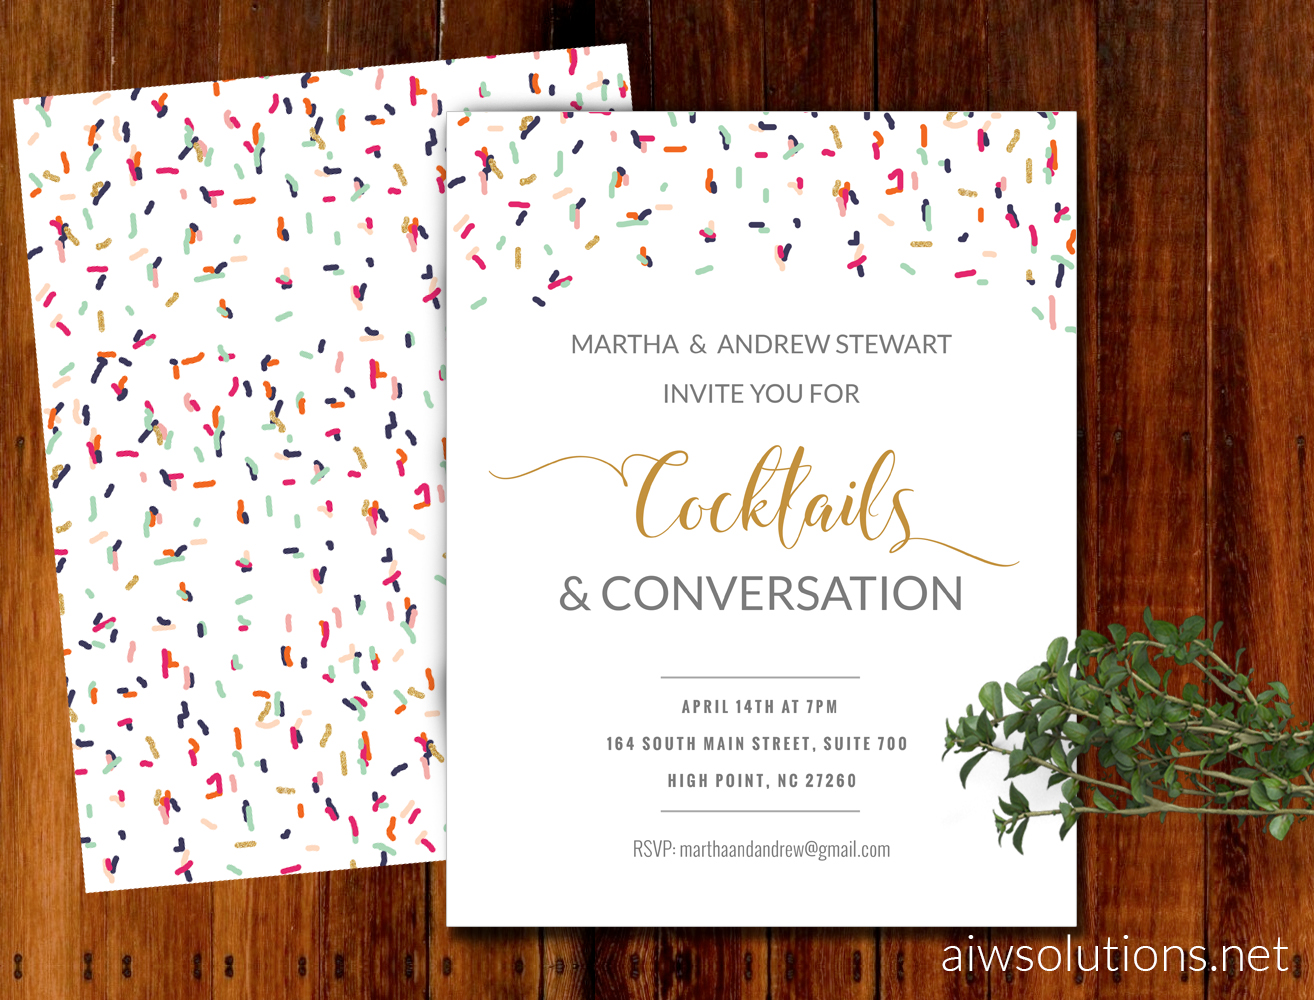 invitations event template save the date template flyer template flyer templatet invitation template 1